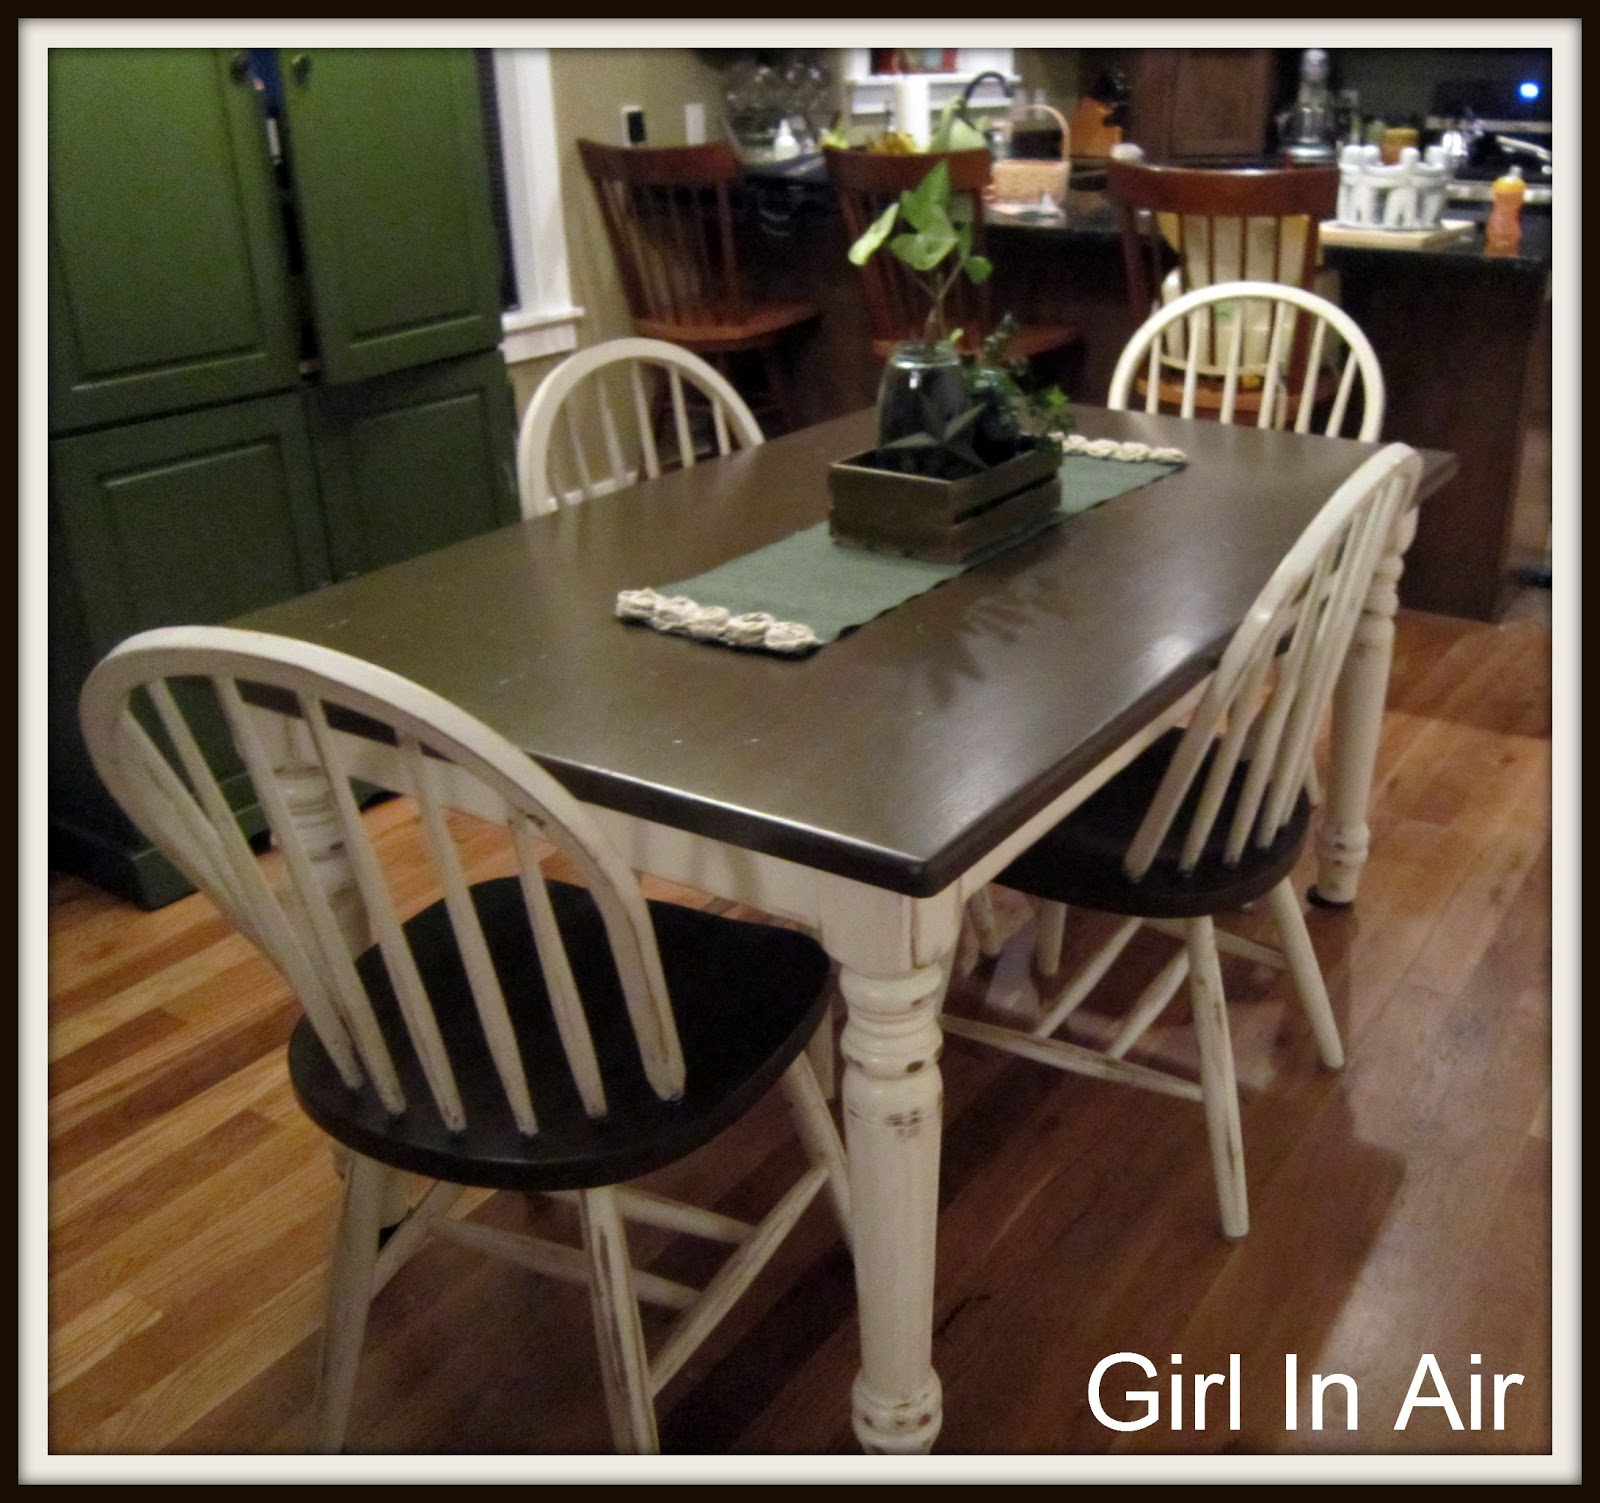 Kitchen Chairs And Tables: Girl In Air BLOG: Staining And Distressing A Table And Chairs